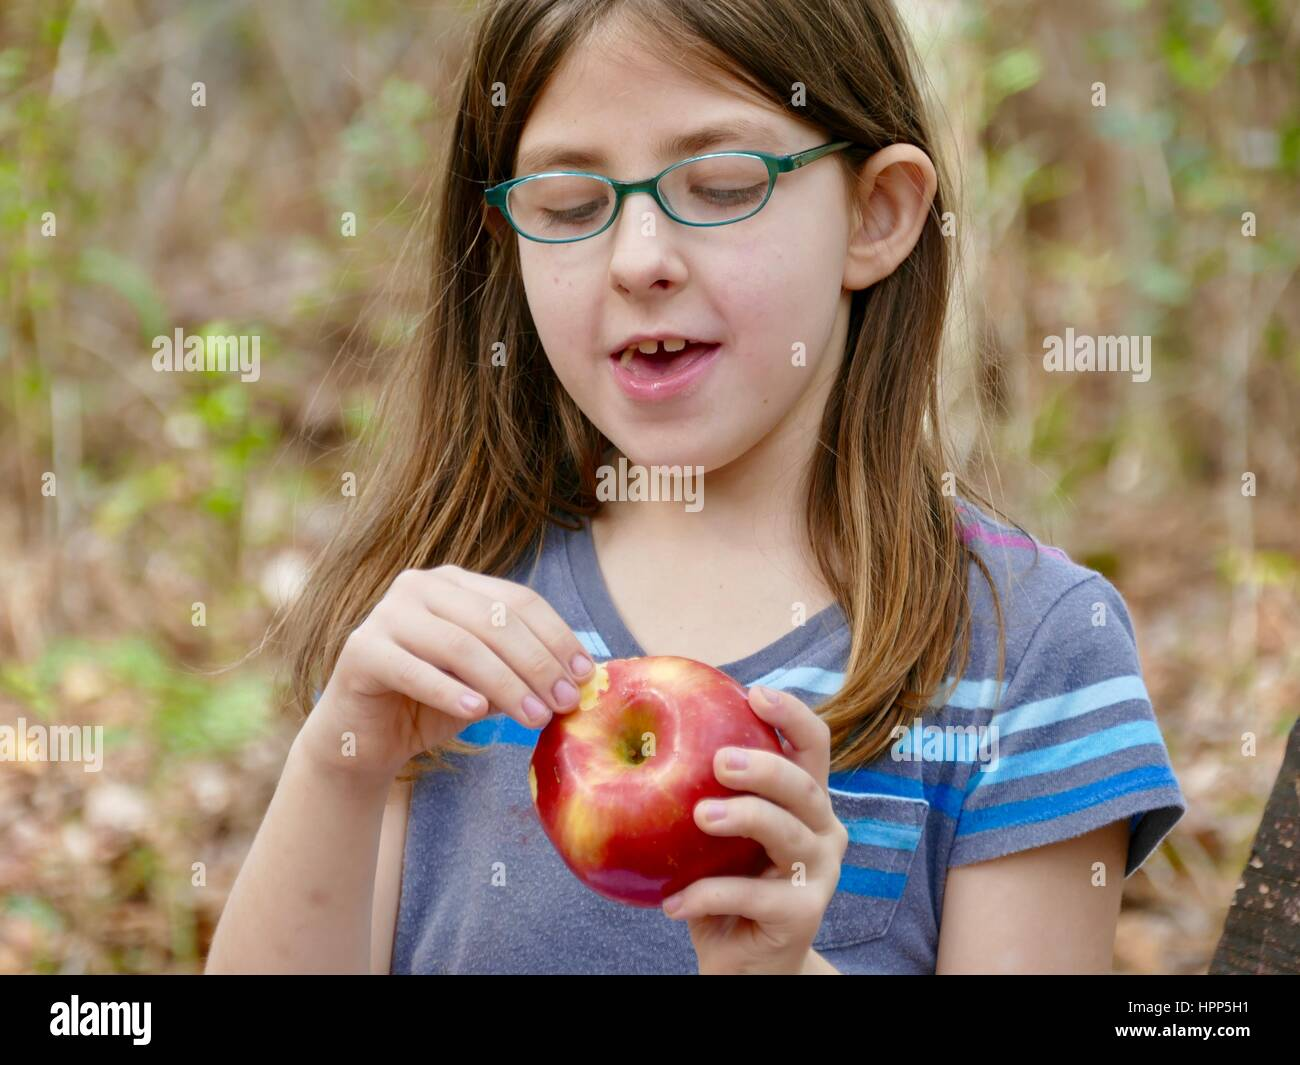 young-girl-with-green-eyeglasses-eating-